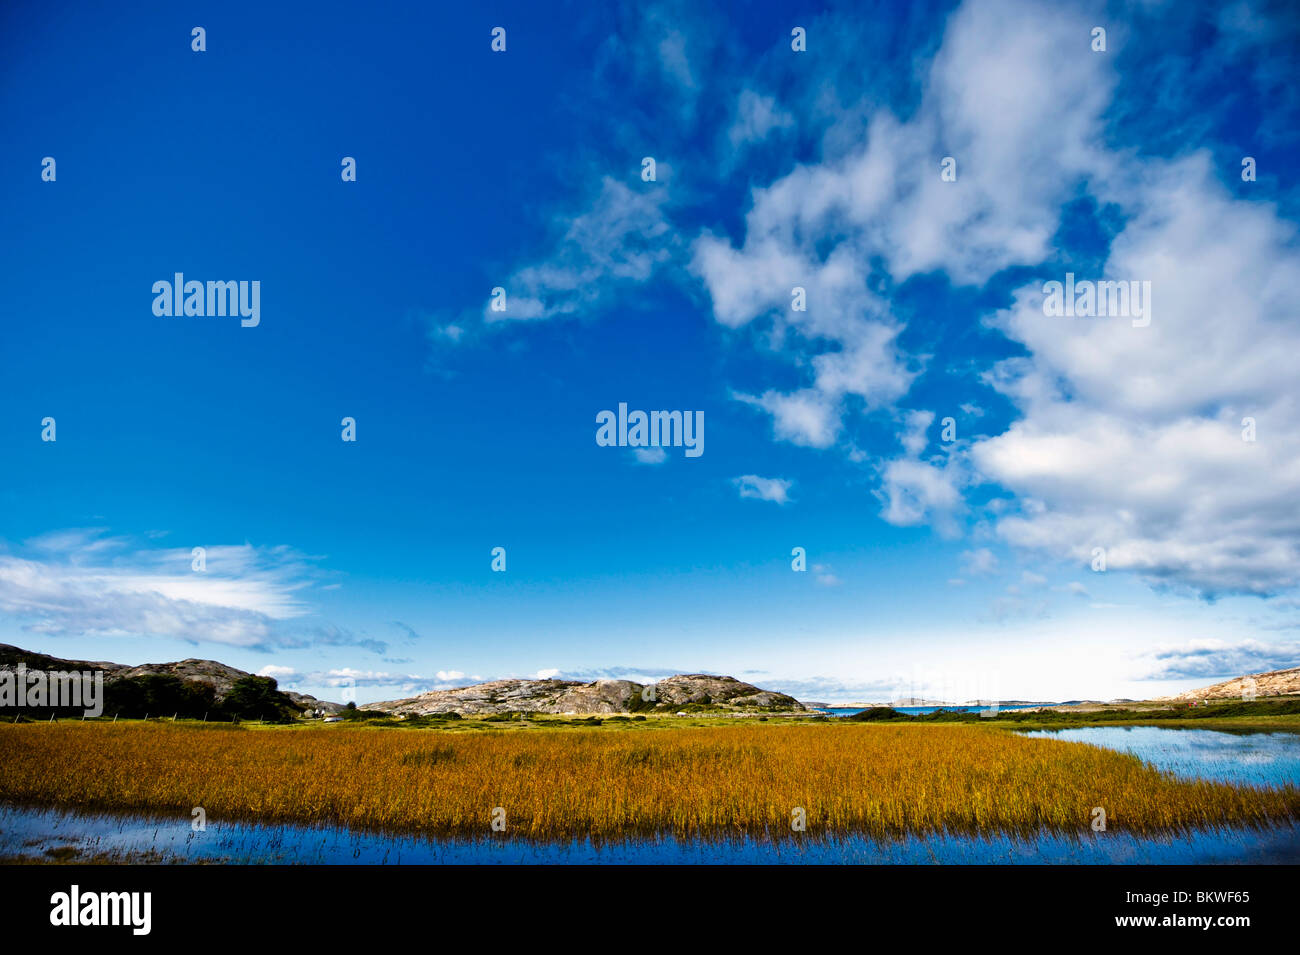 View over landscape - Stock Image